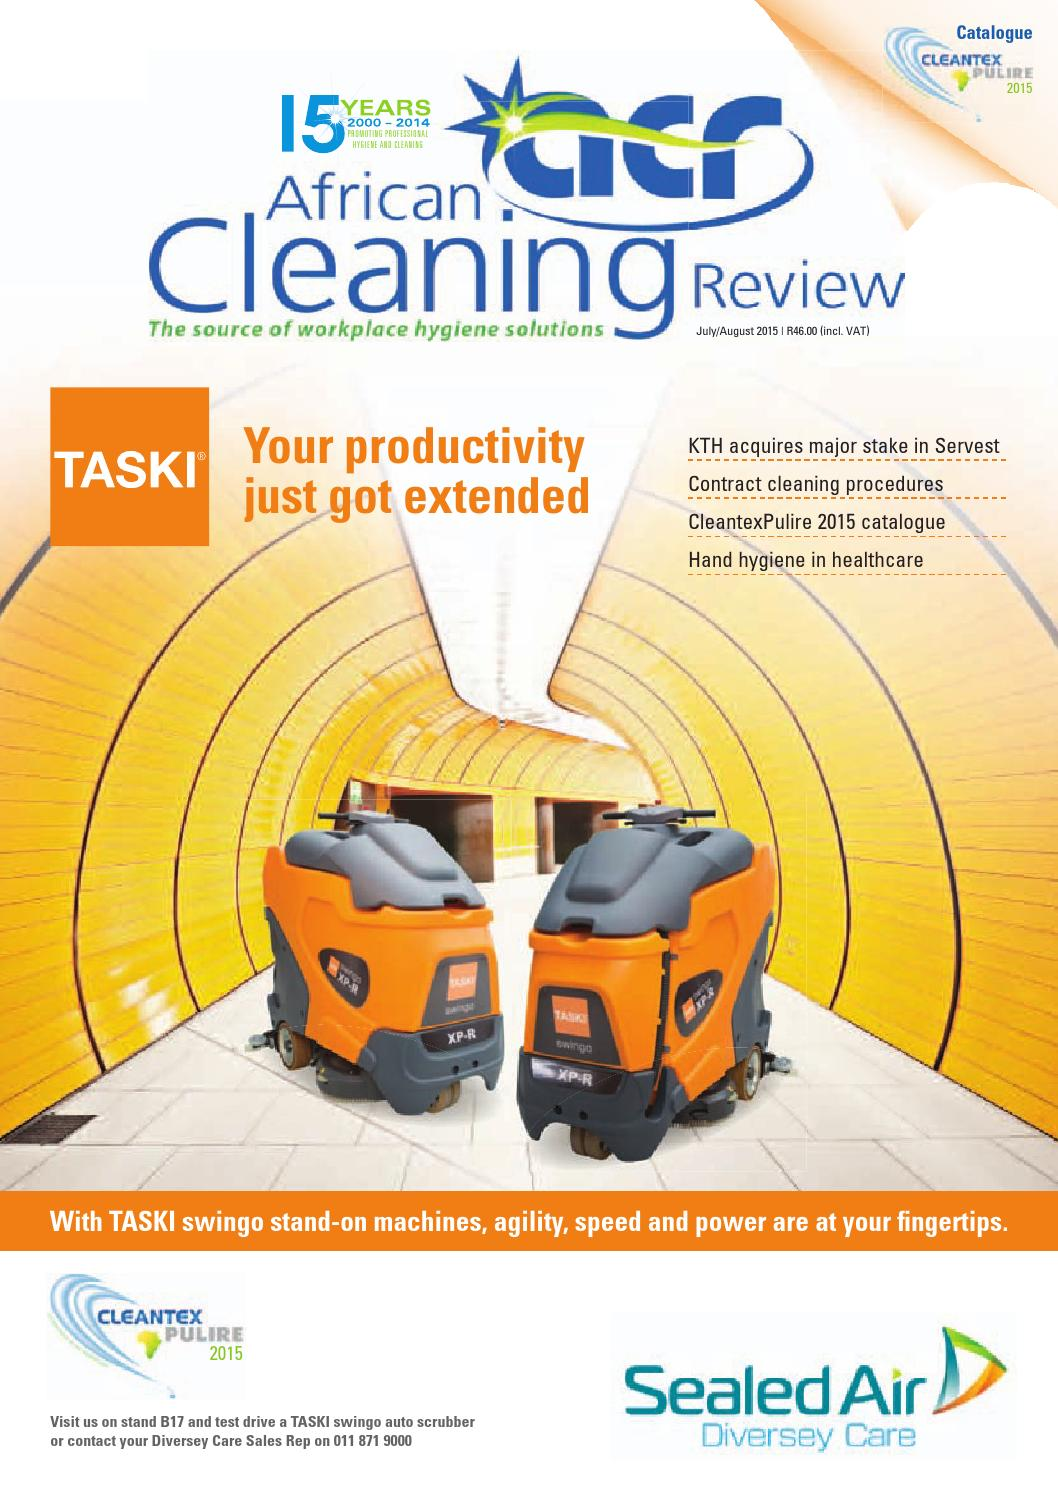 African Cleaning Review JulAug'15 issue by African Cleaning